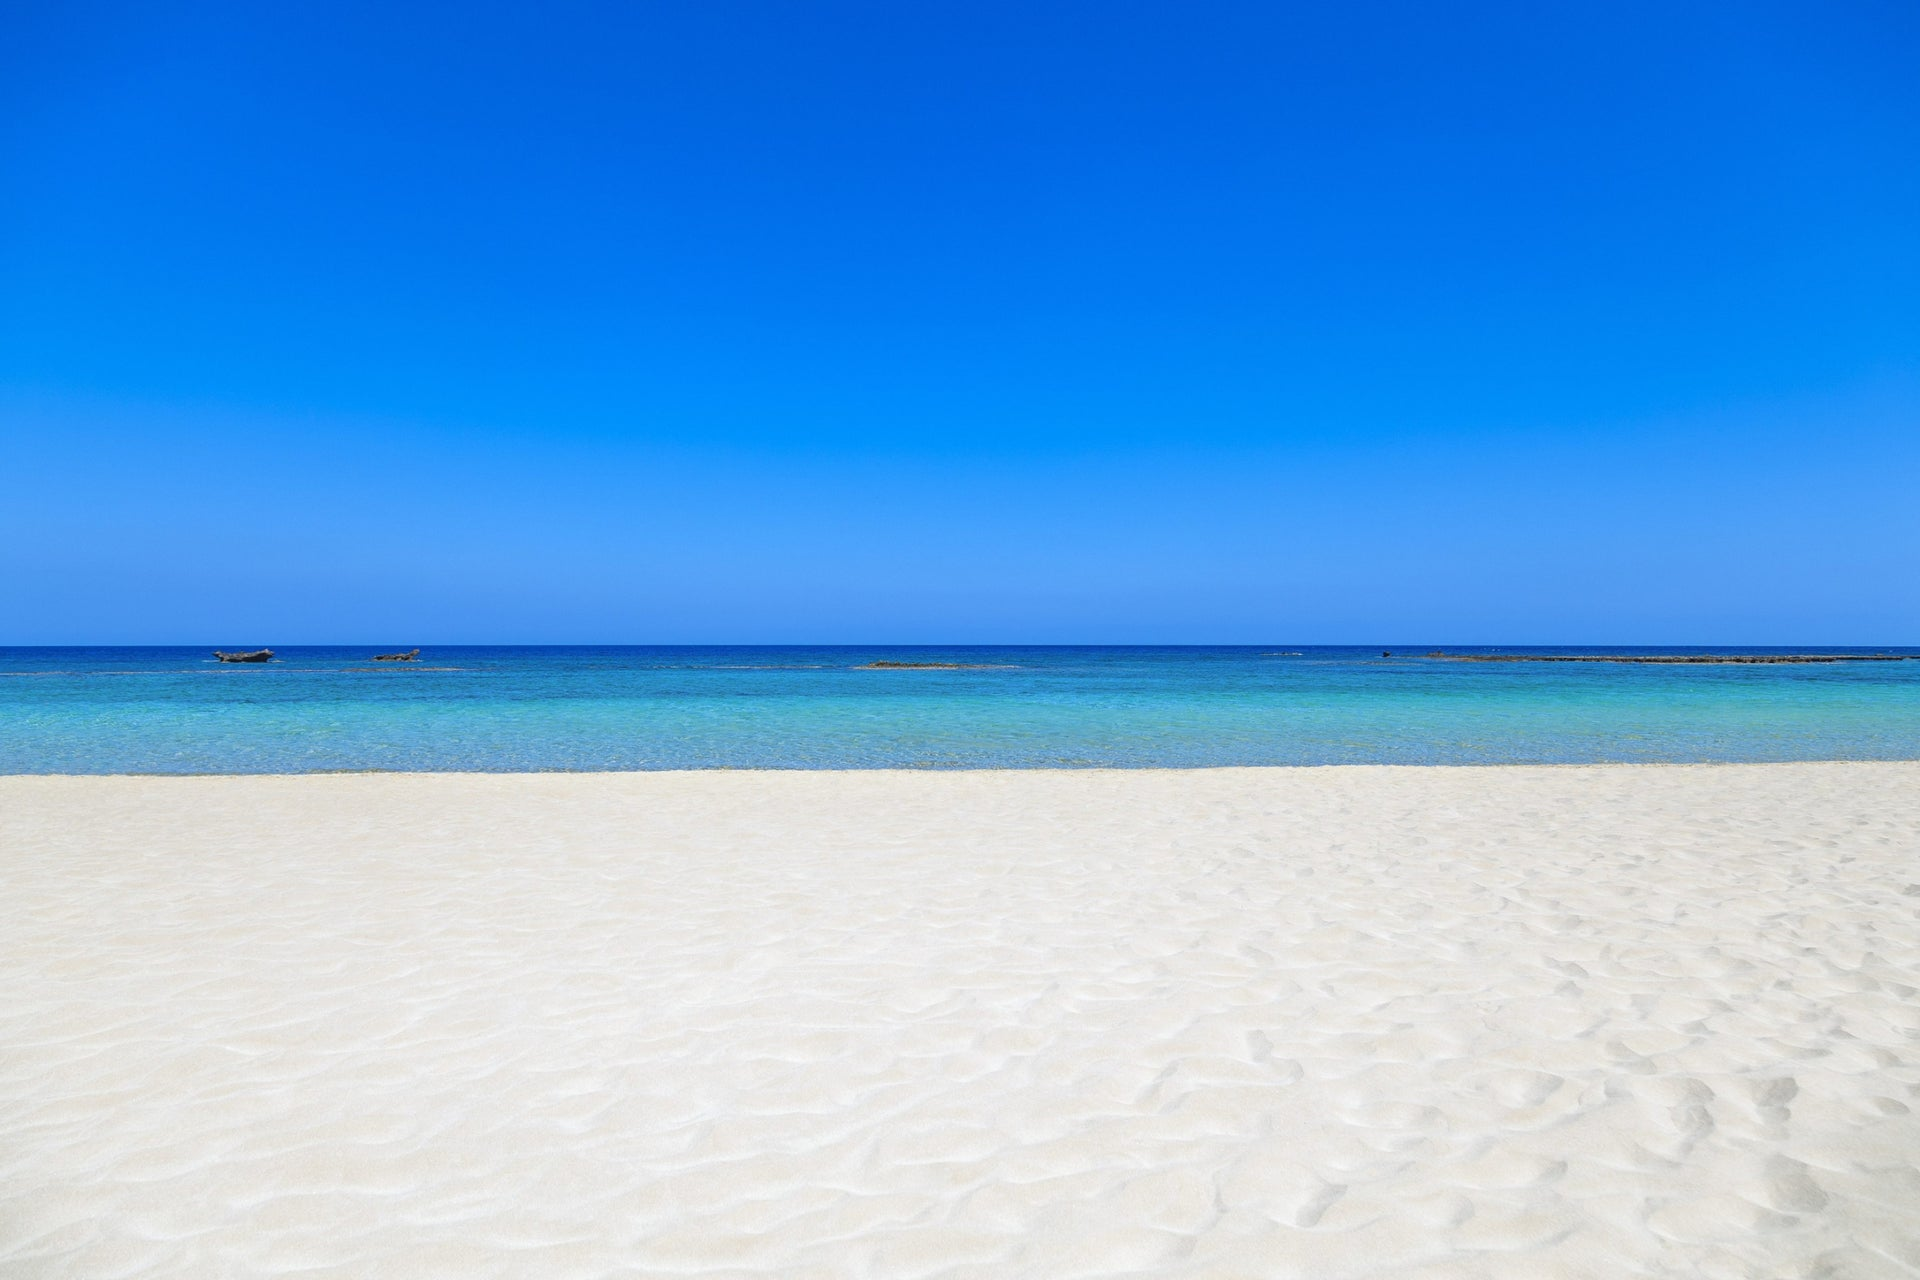 Blue skies and white sands: Are these facts so obvious they don't need to be verified?